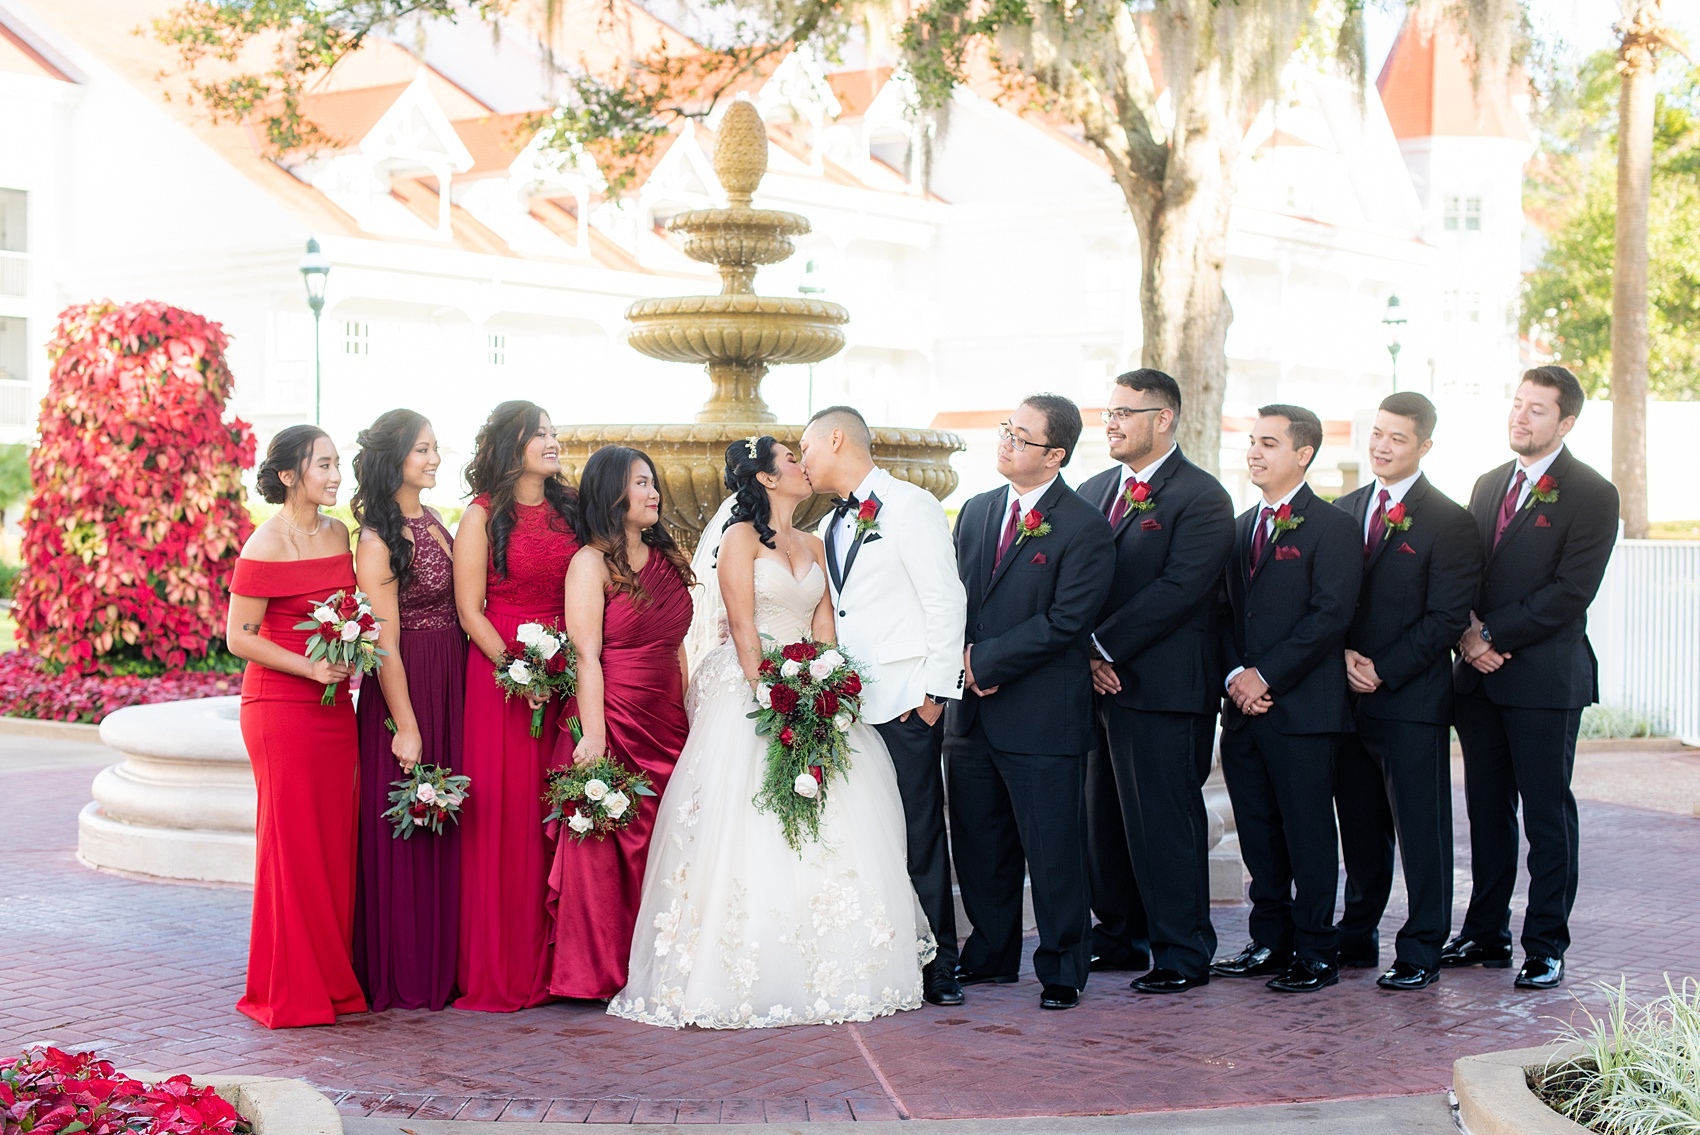 Photographs of a Walt Disney World bridal party by Mikkel Paige Photography. The bride chose the venues of the Grand Floridian, Wedding Pavilion and The Contemporary Resort for photos and fun locations. One even overlooked the Magic Kingdom Park! Their dream wedding included red details: the bridesmaids wore mismatched dresses and carried rose bouquets. #disneywedding #disneybride #waltdisneyworld #DisneyWorldWedding #BeautyandtheBeast #redrosewedding